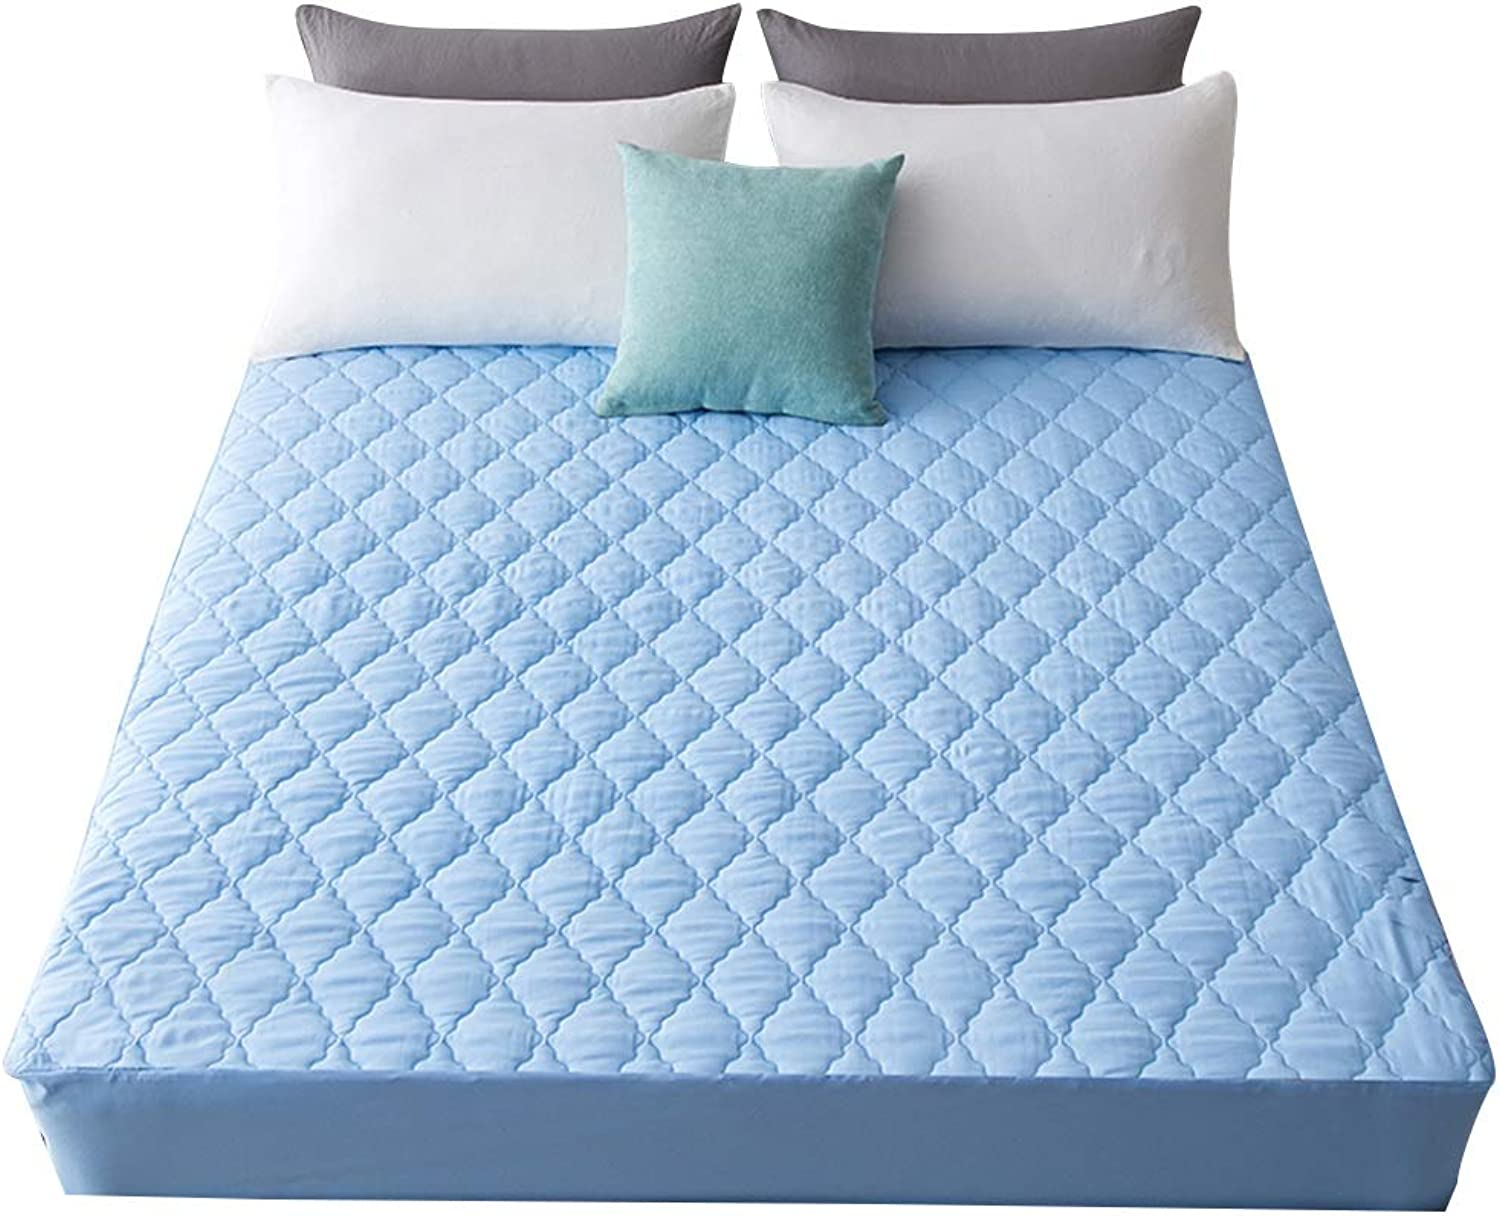 ZHAOHUI Mattress Predector Polyester Waterproof Breathable Non-Slip Noiseless Hypoallergenic Anti-mite Deep Pocket, 4 colors, 3 Sizes (color   bluee-150 x 200cm)